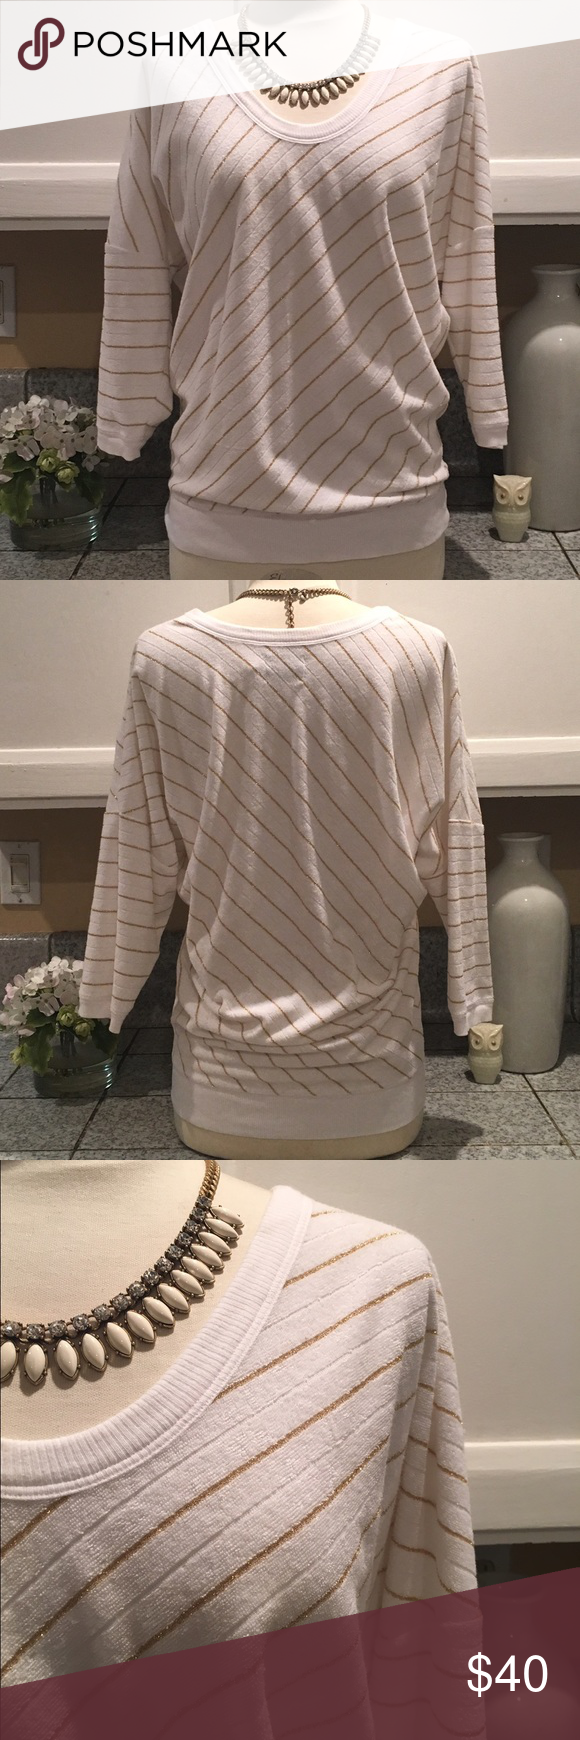 💕Juicy Couture Terry Top💕 Cute white/silver stripe Terry pullover from Juicy Couture. Perfect for this summer. Very soft and clean. In excellent condition. 💕 Juicy Couture Tops